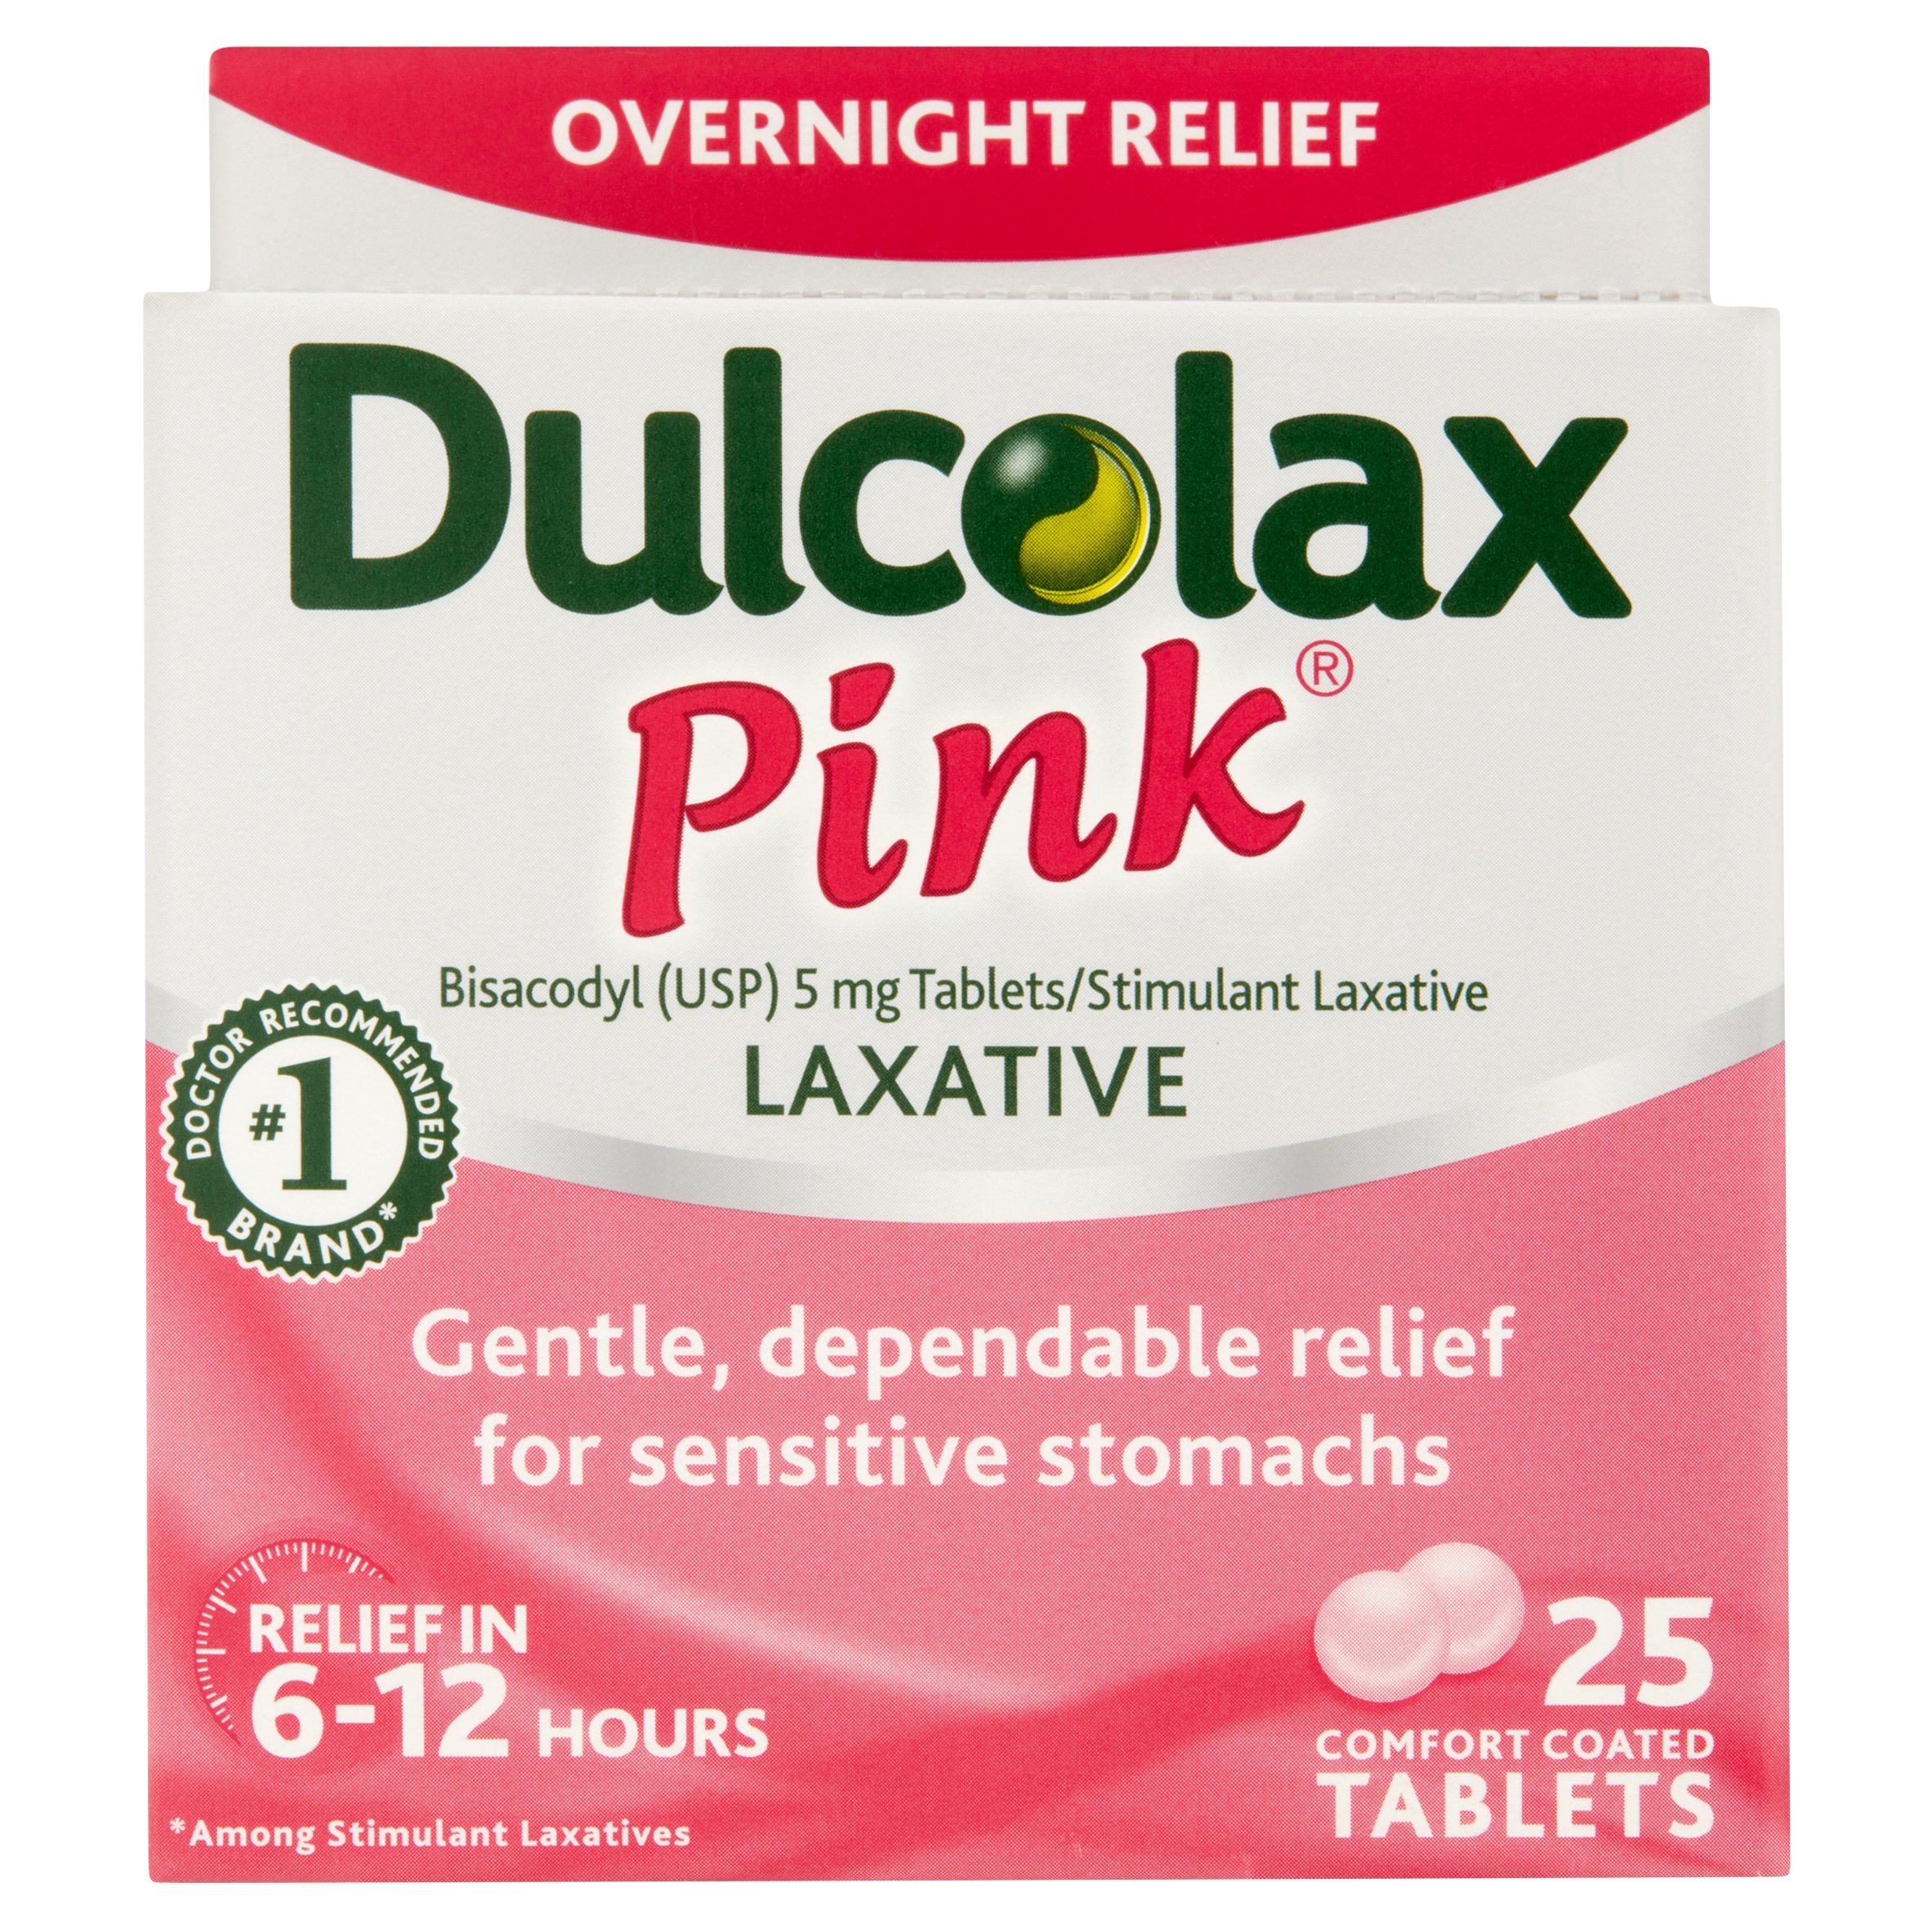 Dulcolax Pink Laxative Comfort Coated Tablets 25ct, Bisacodyl USP 5 mg Tablets/Stimulant Laxative